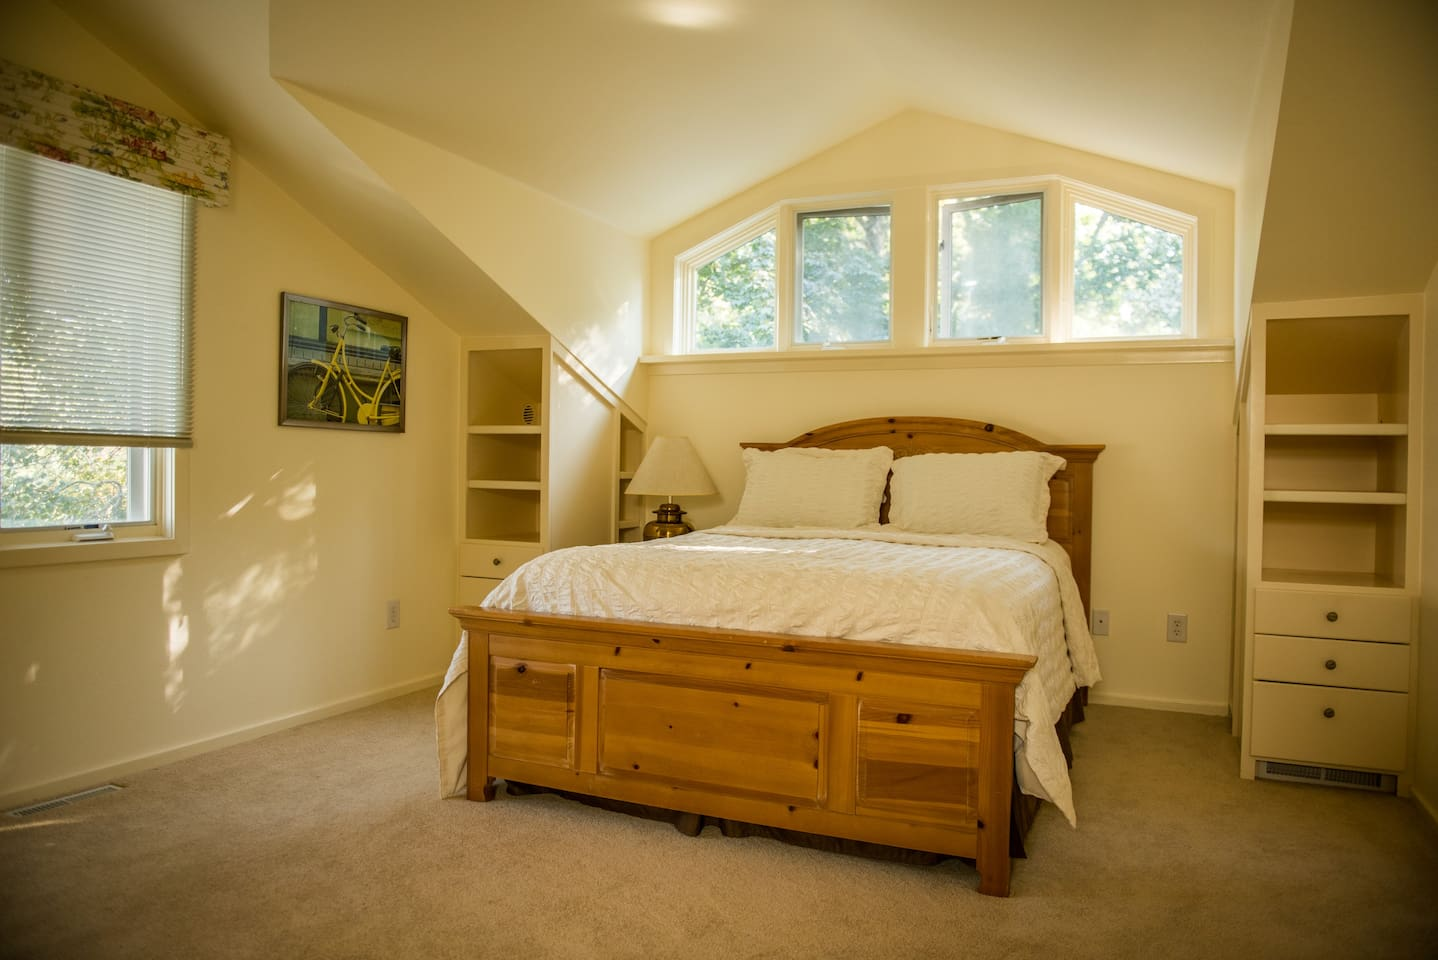 Spacious, light-filled bedroom with queen-sized bed,built-in shelves and desk.